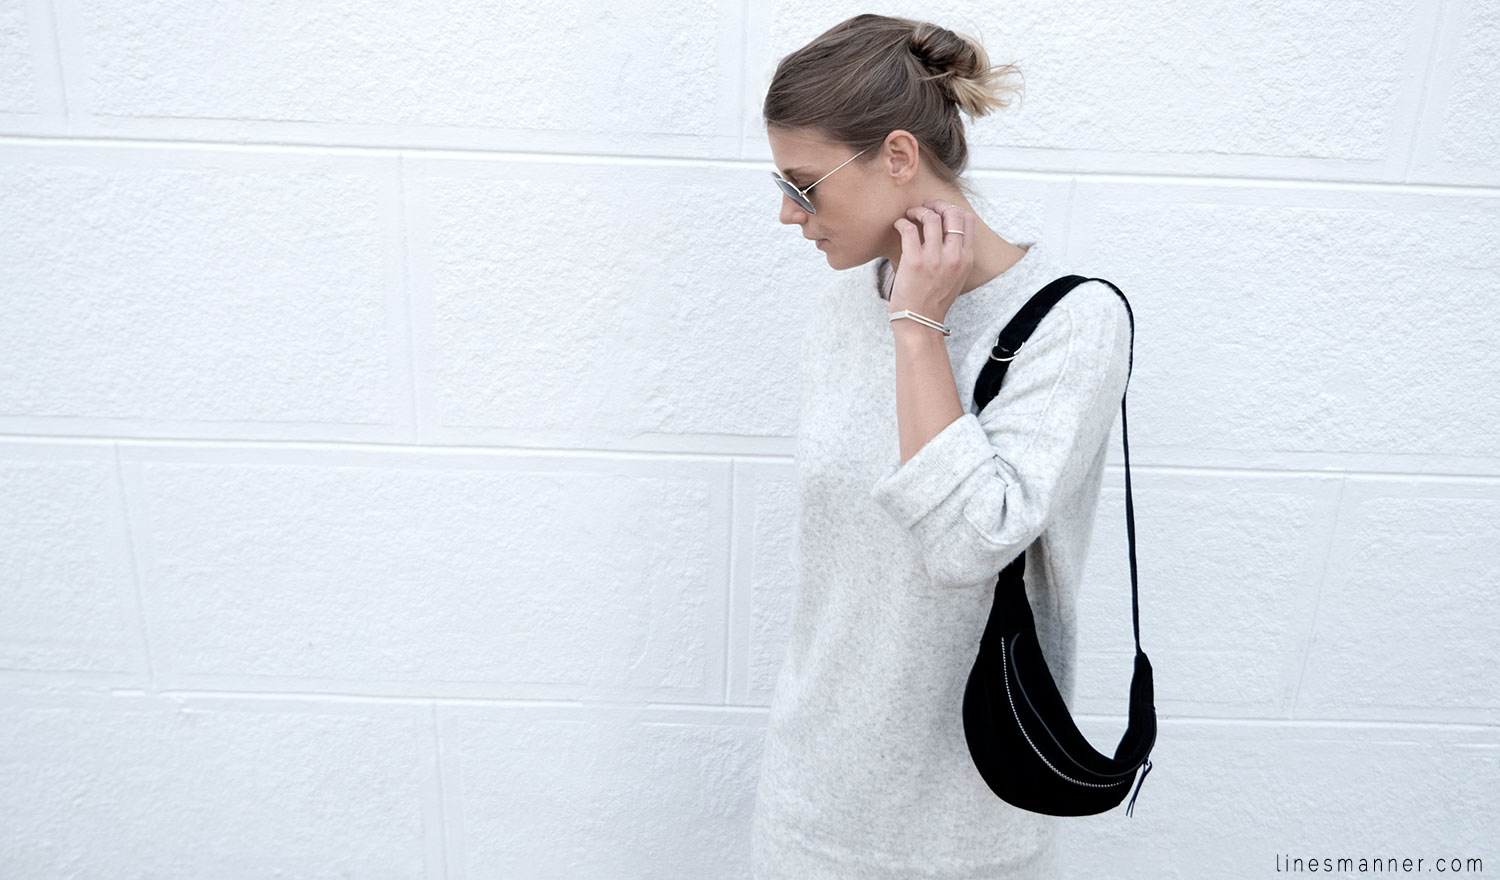 Lines-Manner-Fashion-Collaboration-The_Demeler-Monochrome-Grey_on_Grey-Fresh-Brightly-Outfit-Simplicity-Details-Trend-Minimalist-Flowy-Layering-Sleeves-Sweater_Dress-5